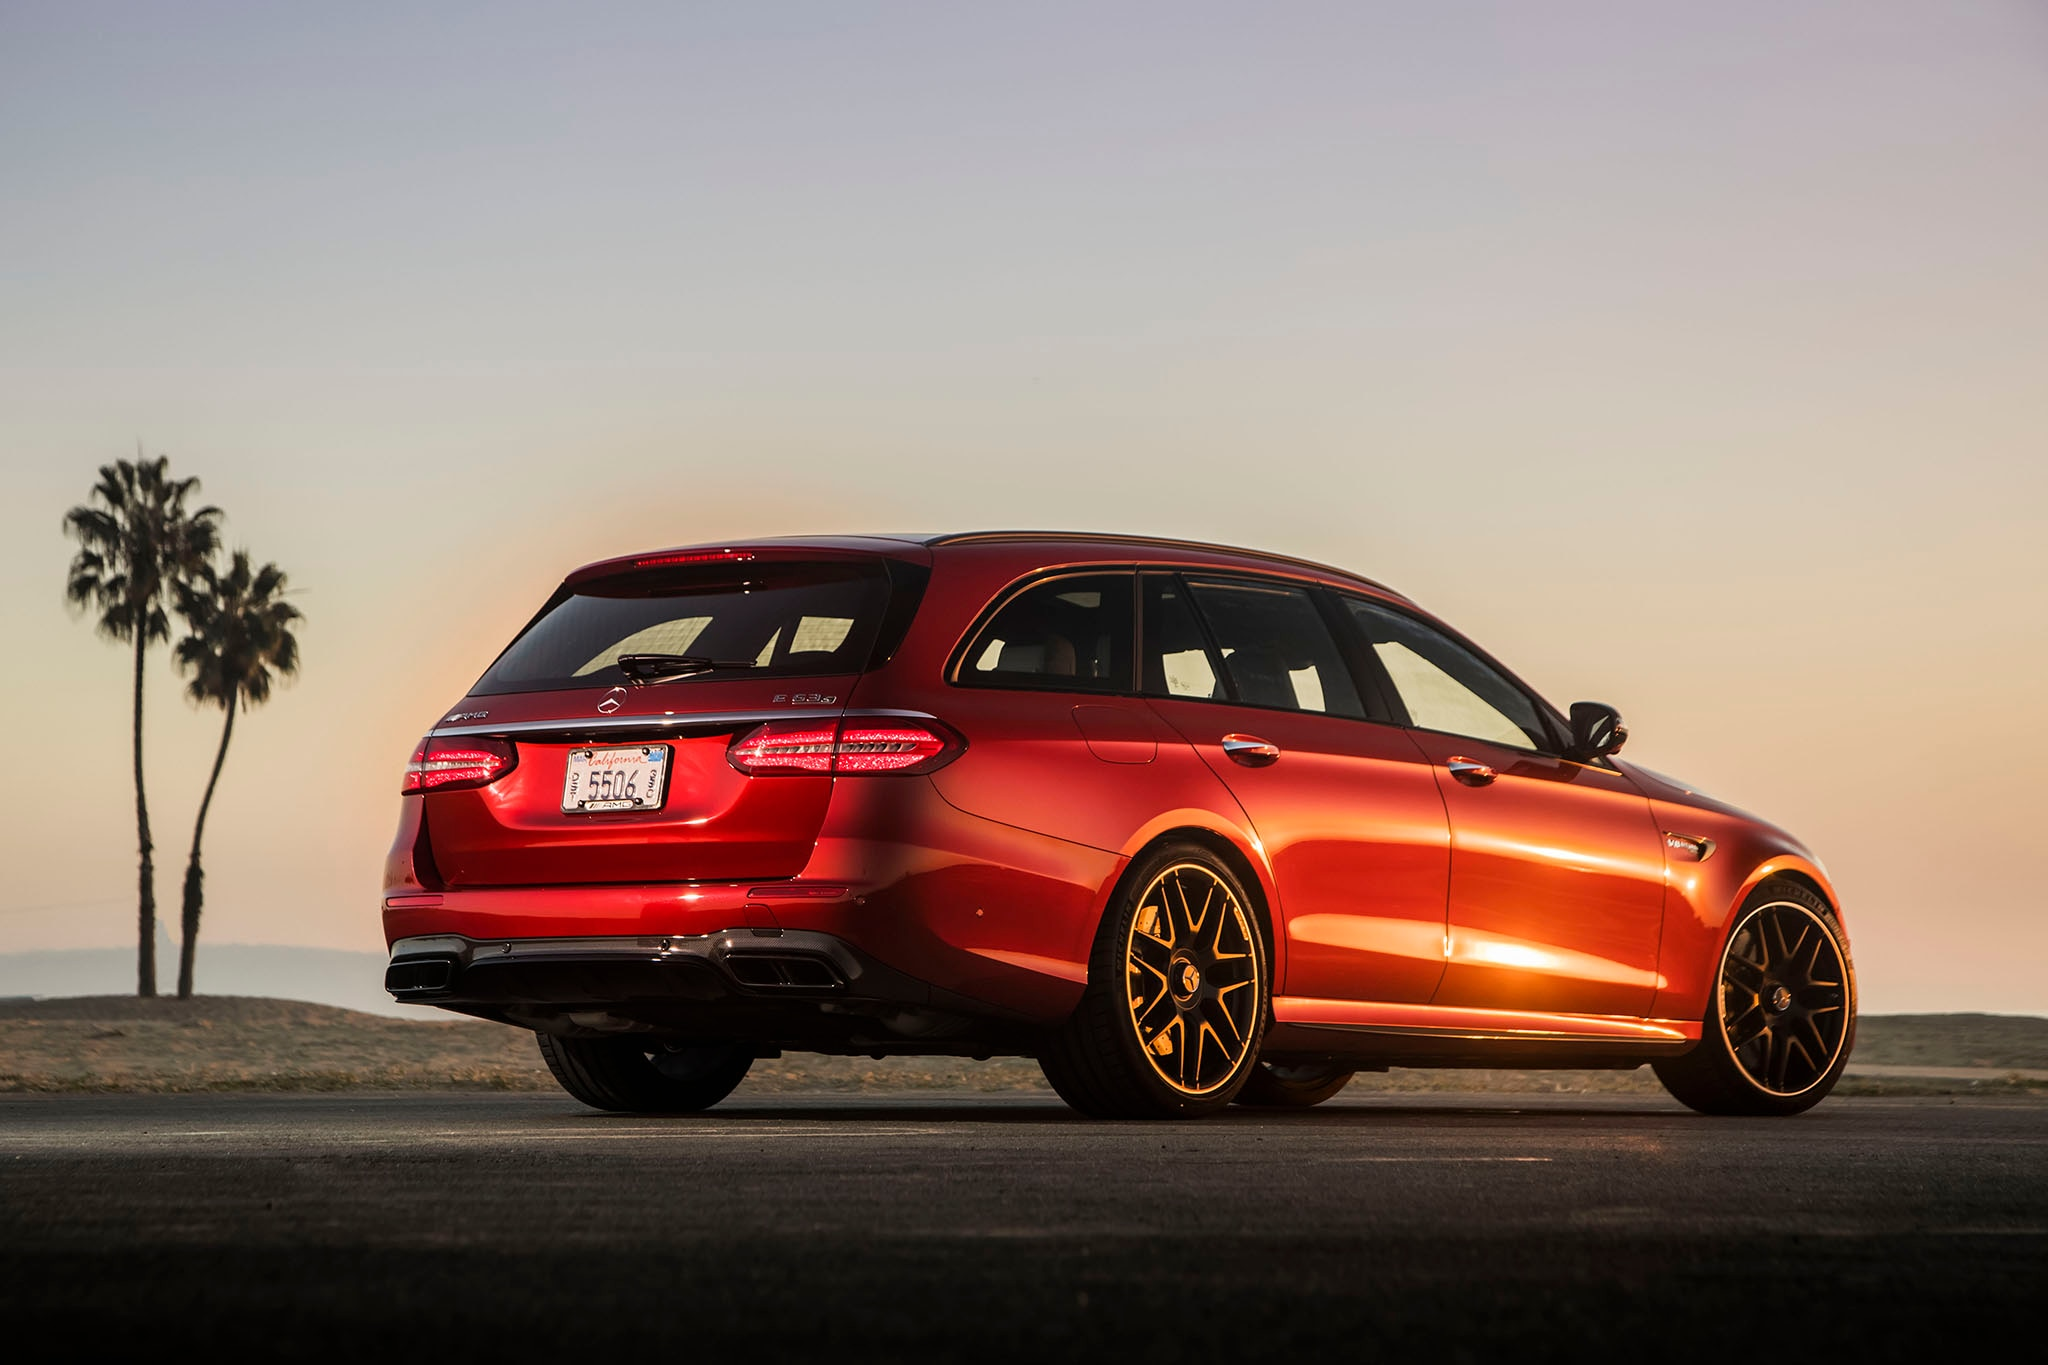 2018 mercedes amg e63 s wagon priced from 107 945 for Mercedes benz e63 amg 2018